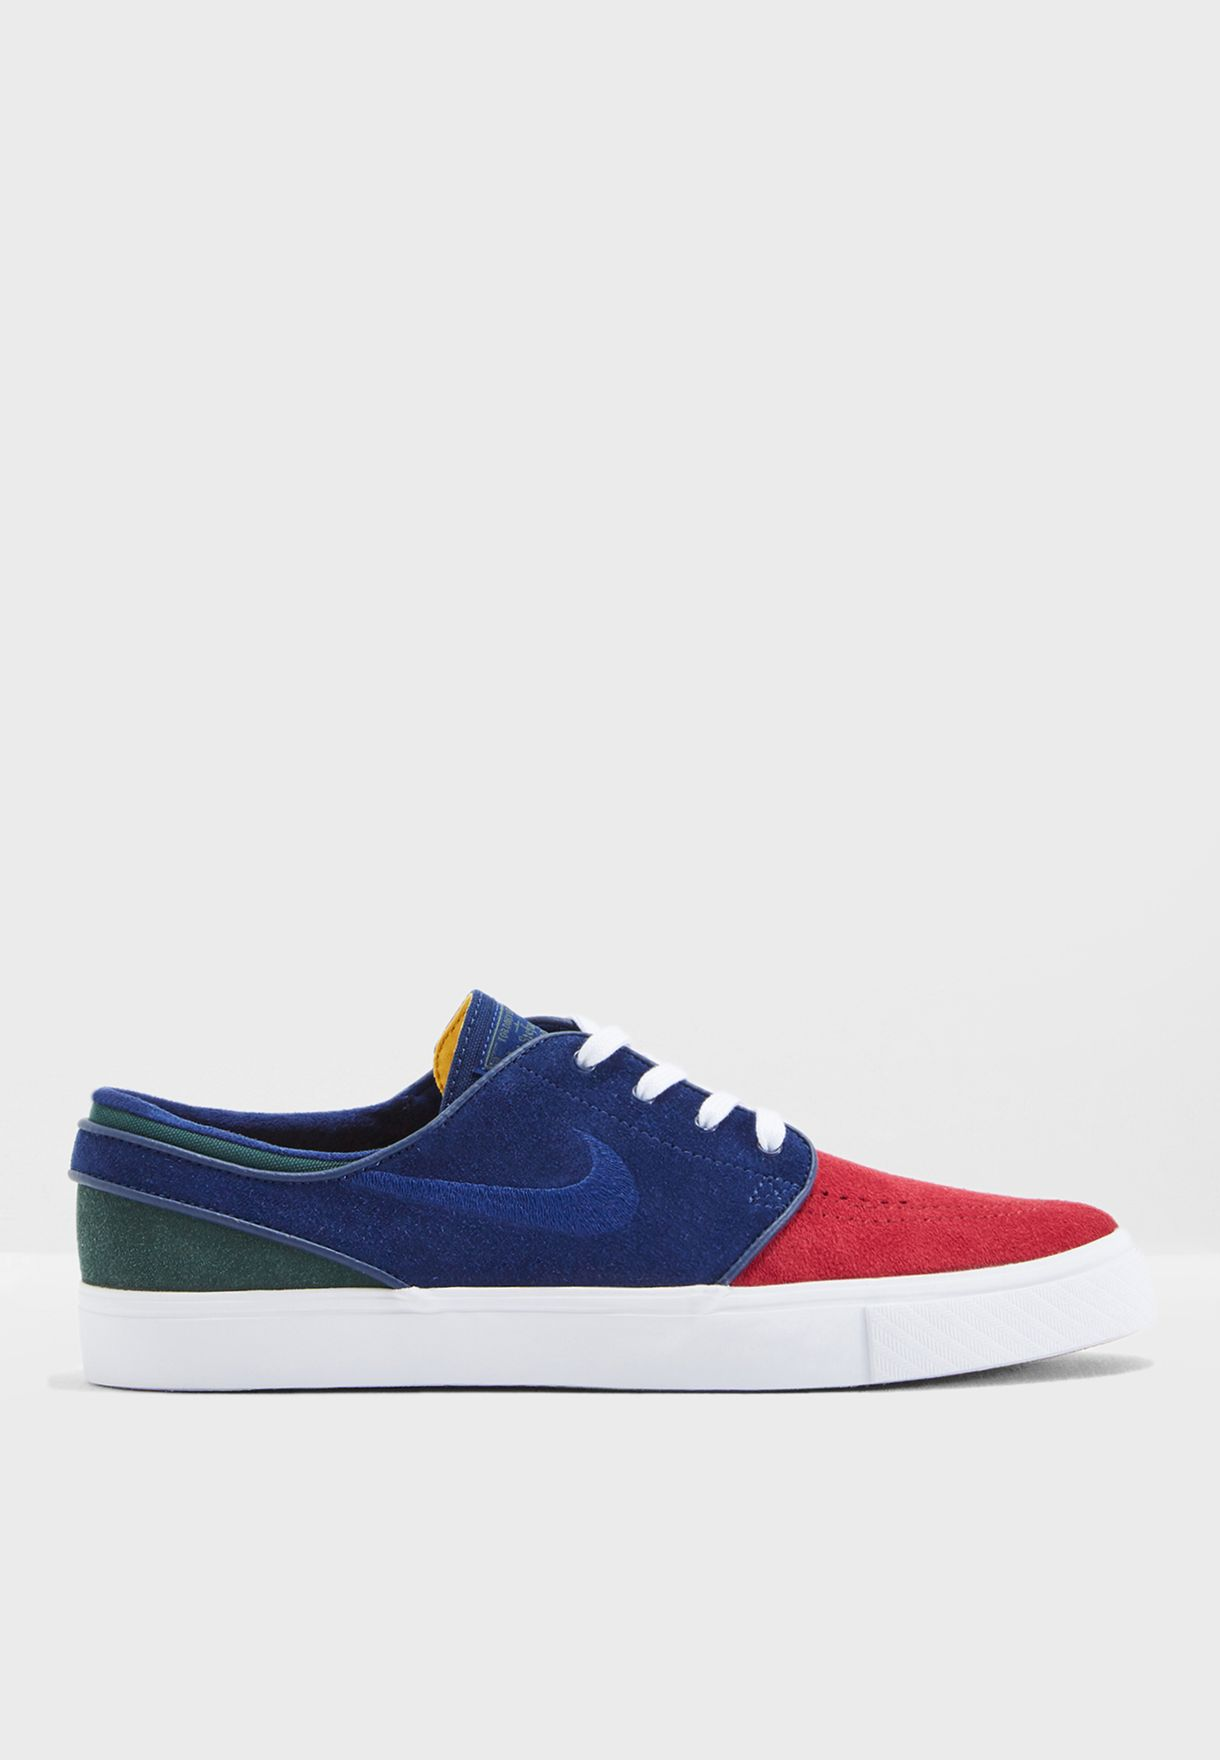 info for 3298d 80466 Zoom Stefan Janoski